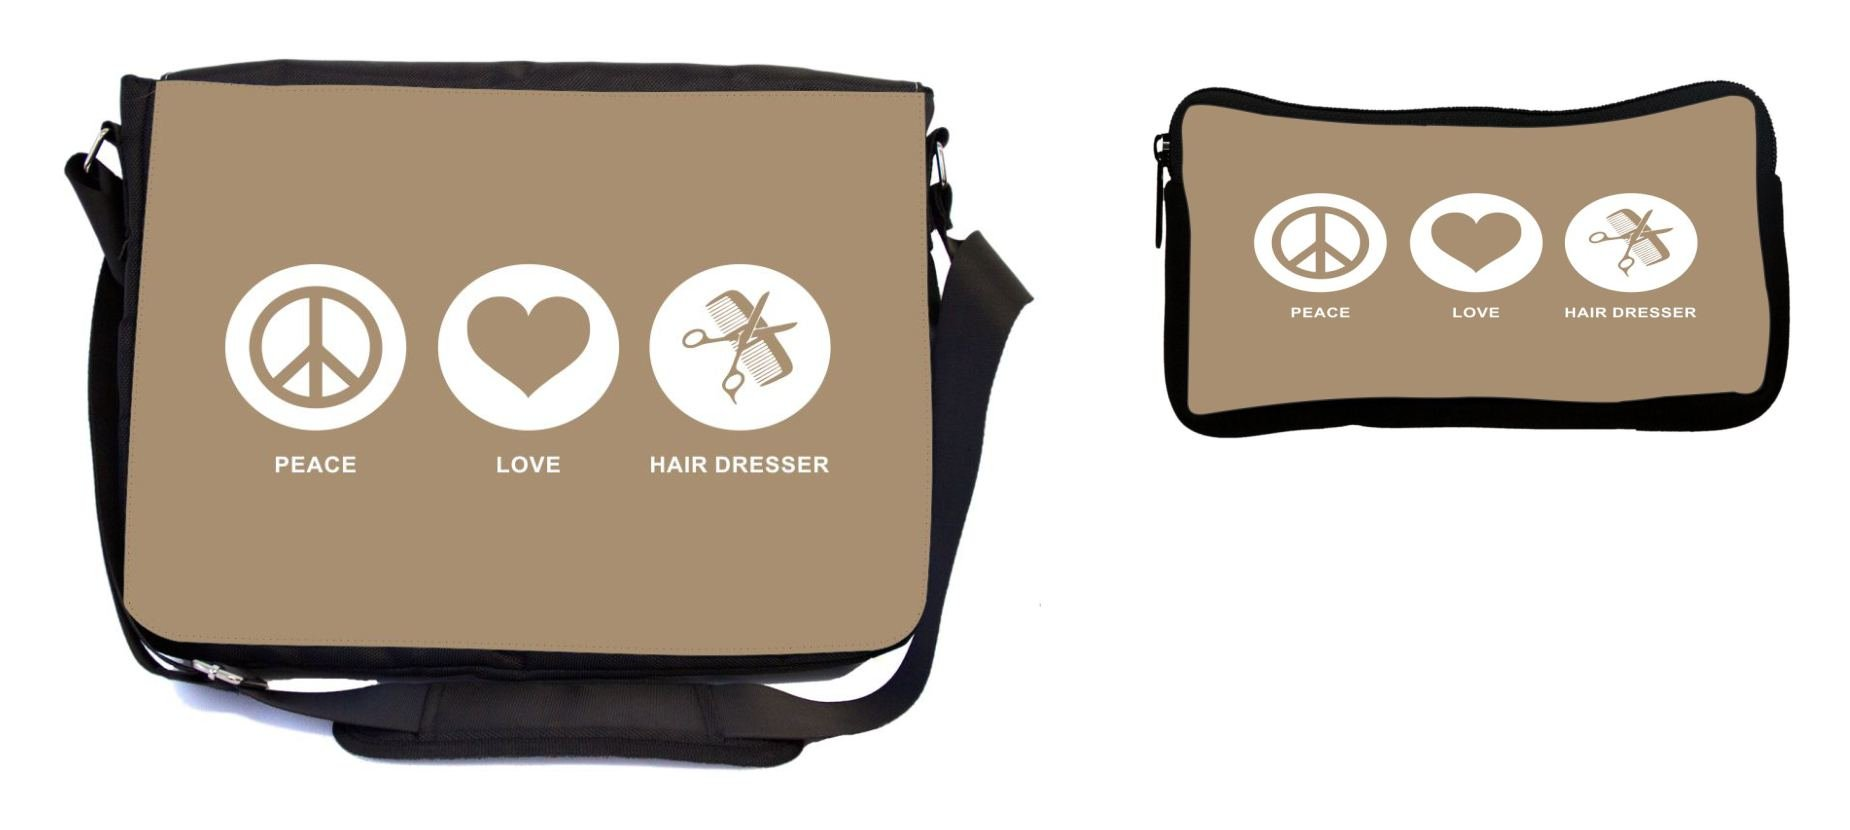 Rikki Knight Peace Love Hair Dresser Brown Color Design Multifunction Messenger Bag - School Bag - Laptop Bag - with Padded Insert for School or Work - Includes Pencil Case